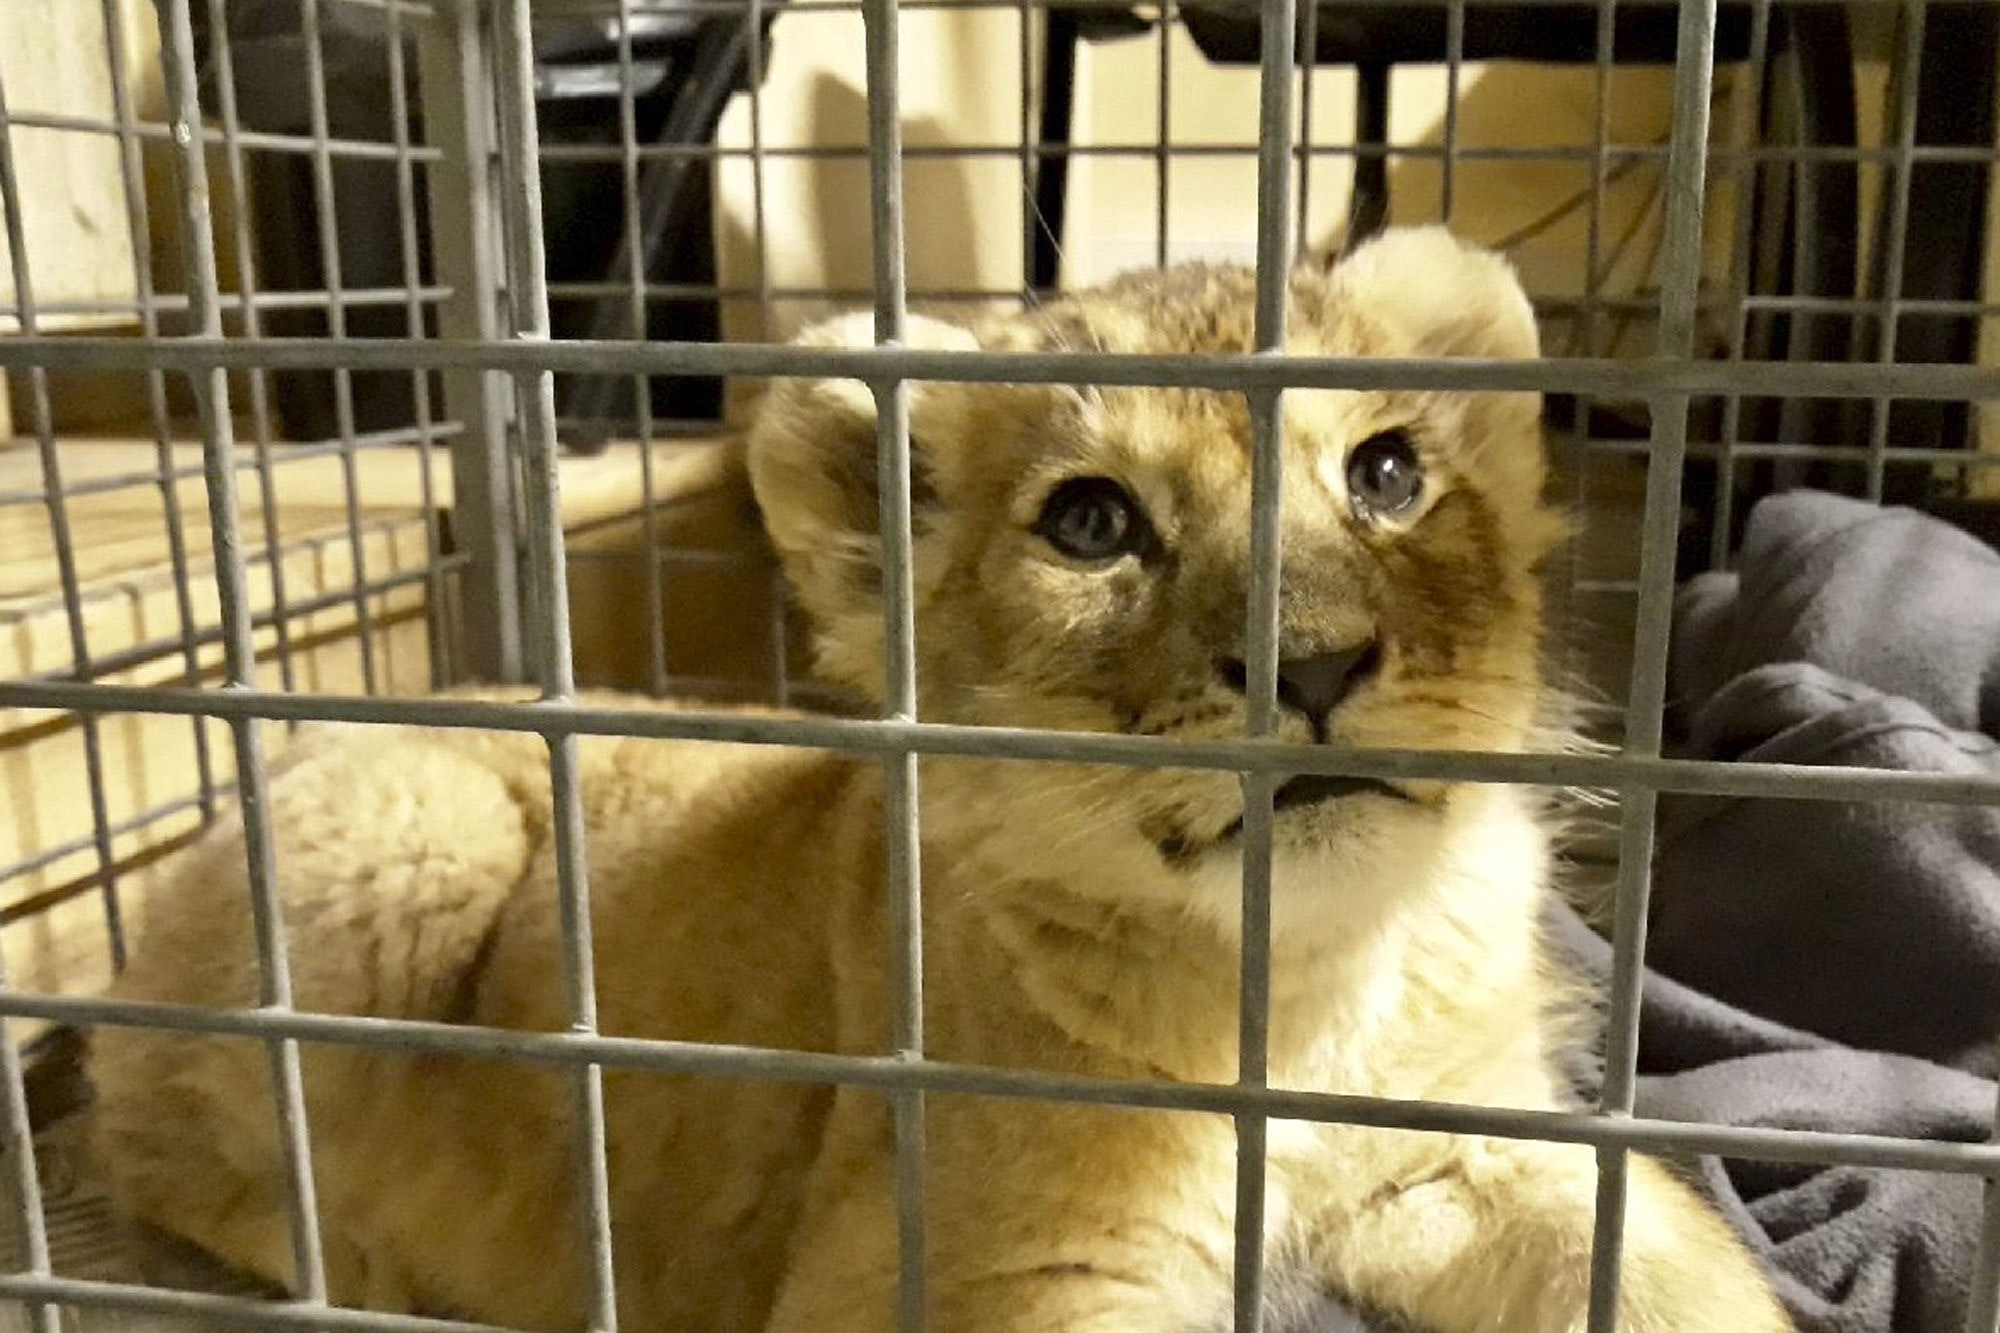 Lion cub found in Lamborghini on France's Champs-Elysees